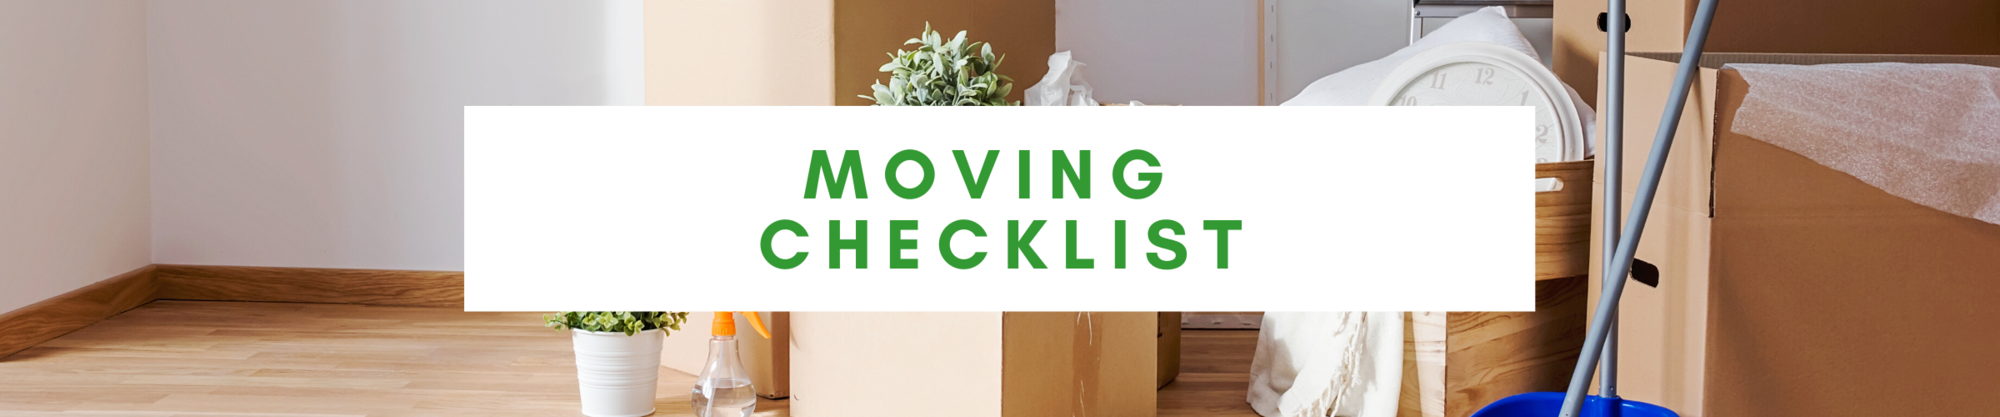 Moving Checklist | Coast Crew | Kansas City Homes